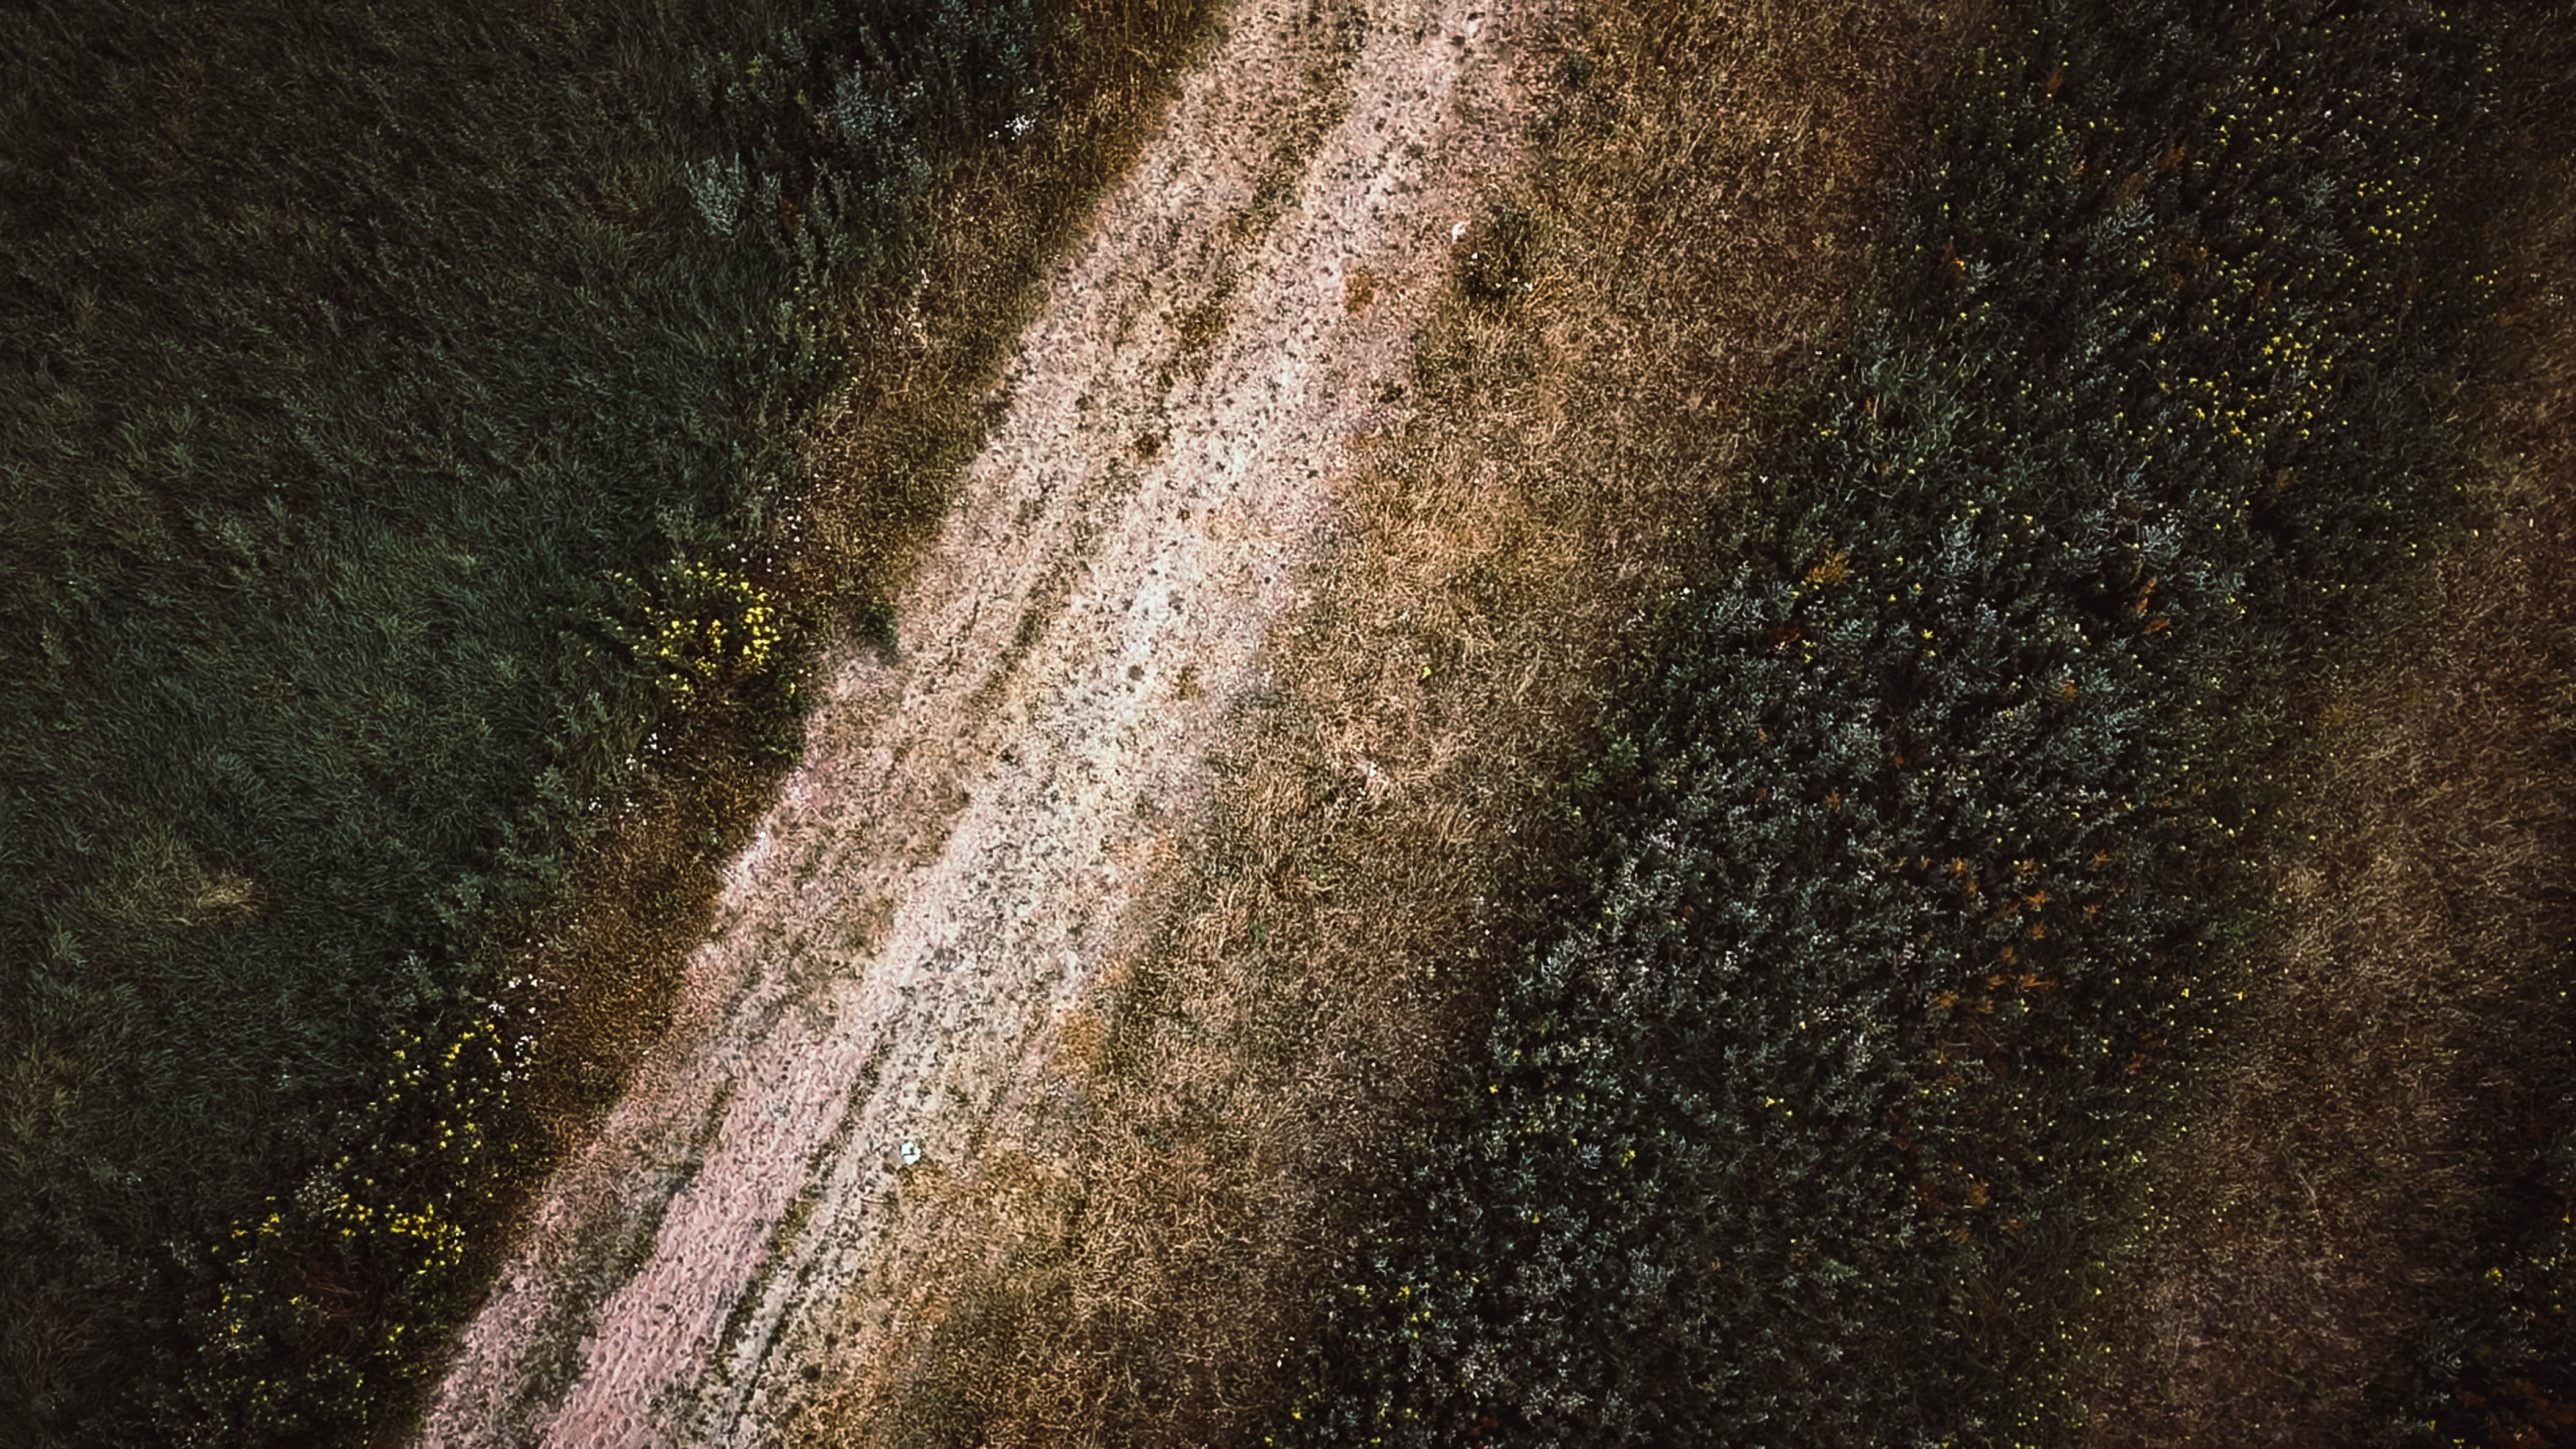 aerial photograph of dirt road between trees